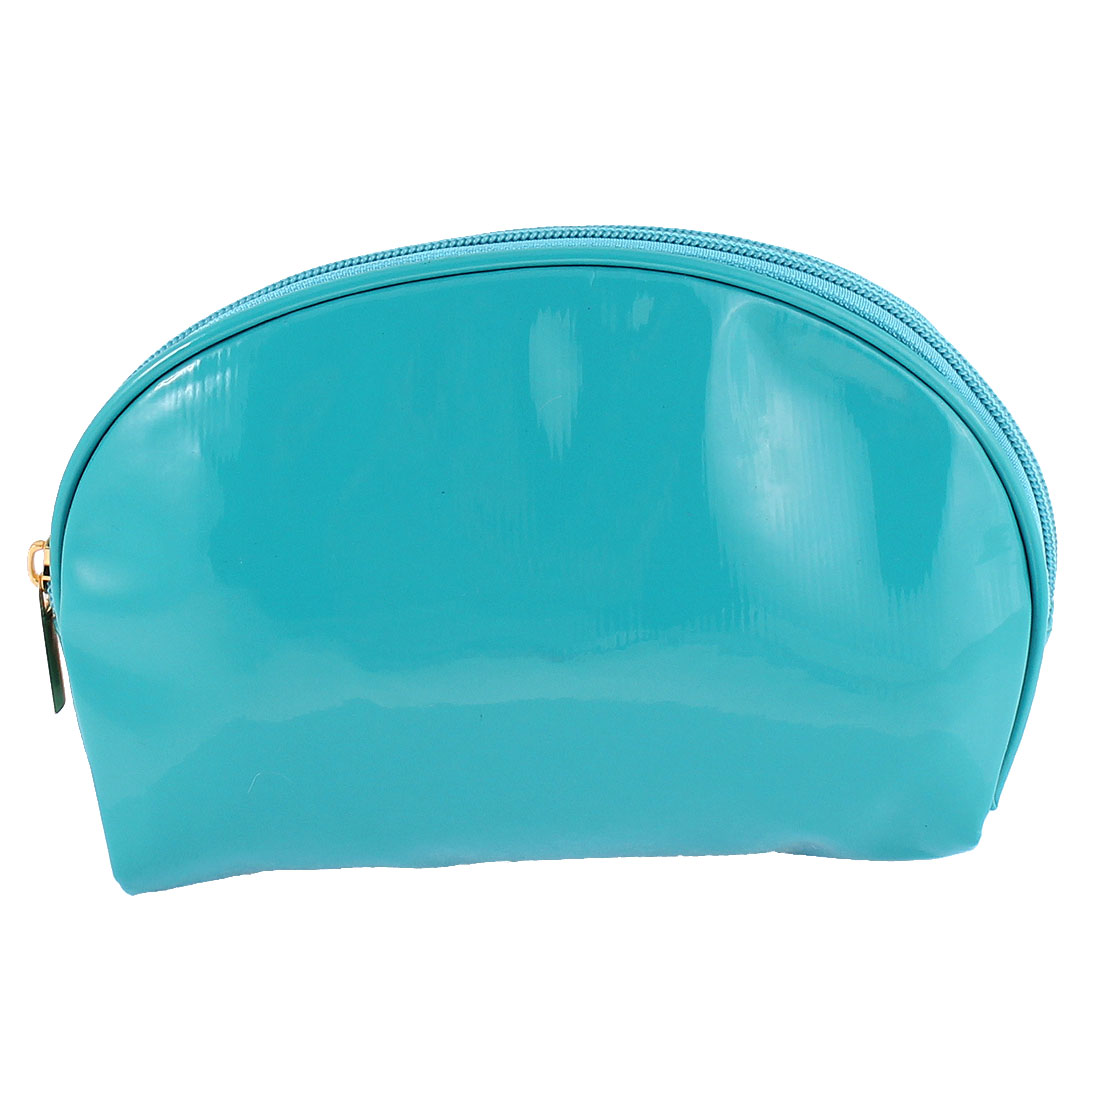 Oval Shaped Zip Up Water Resistant Makeup Cosmetic Holder Bag Teal Blue